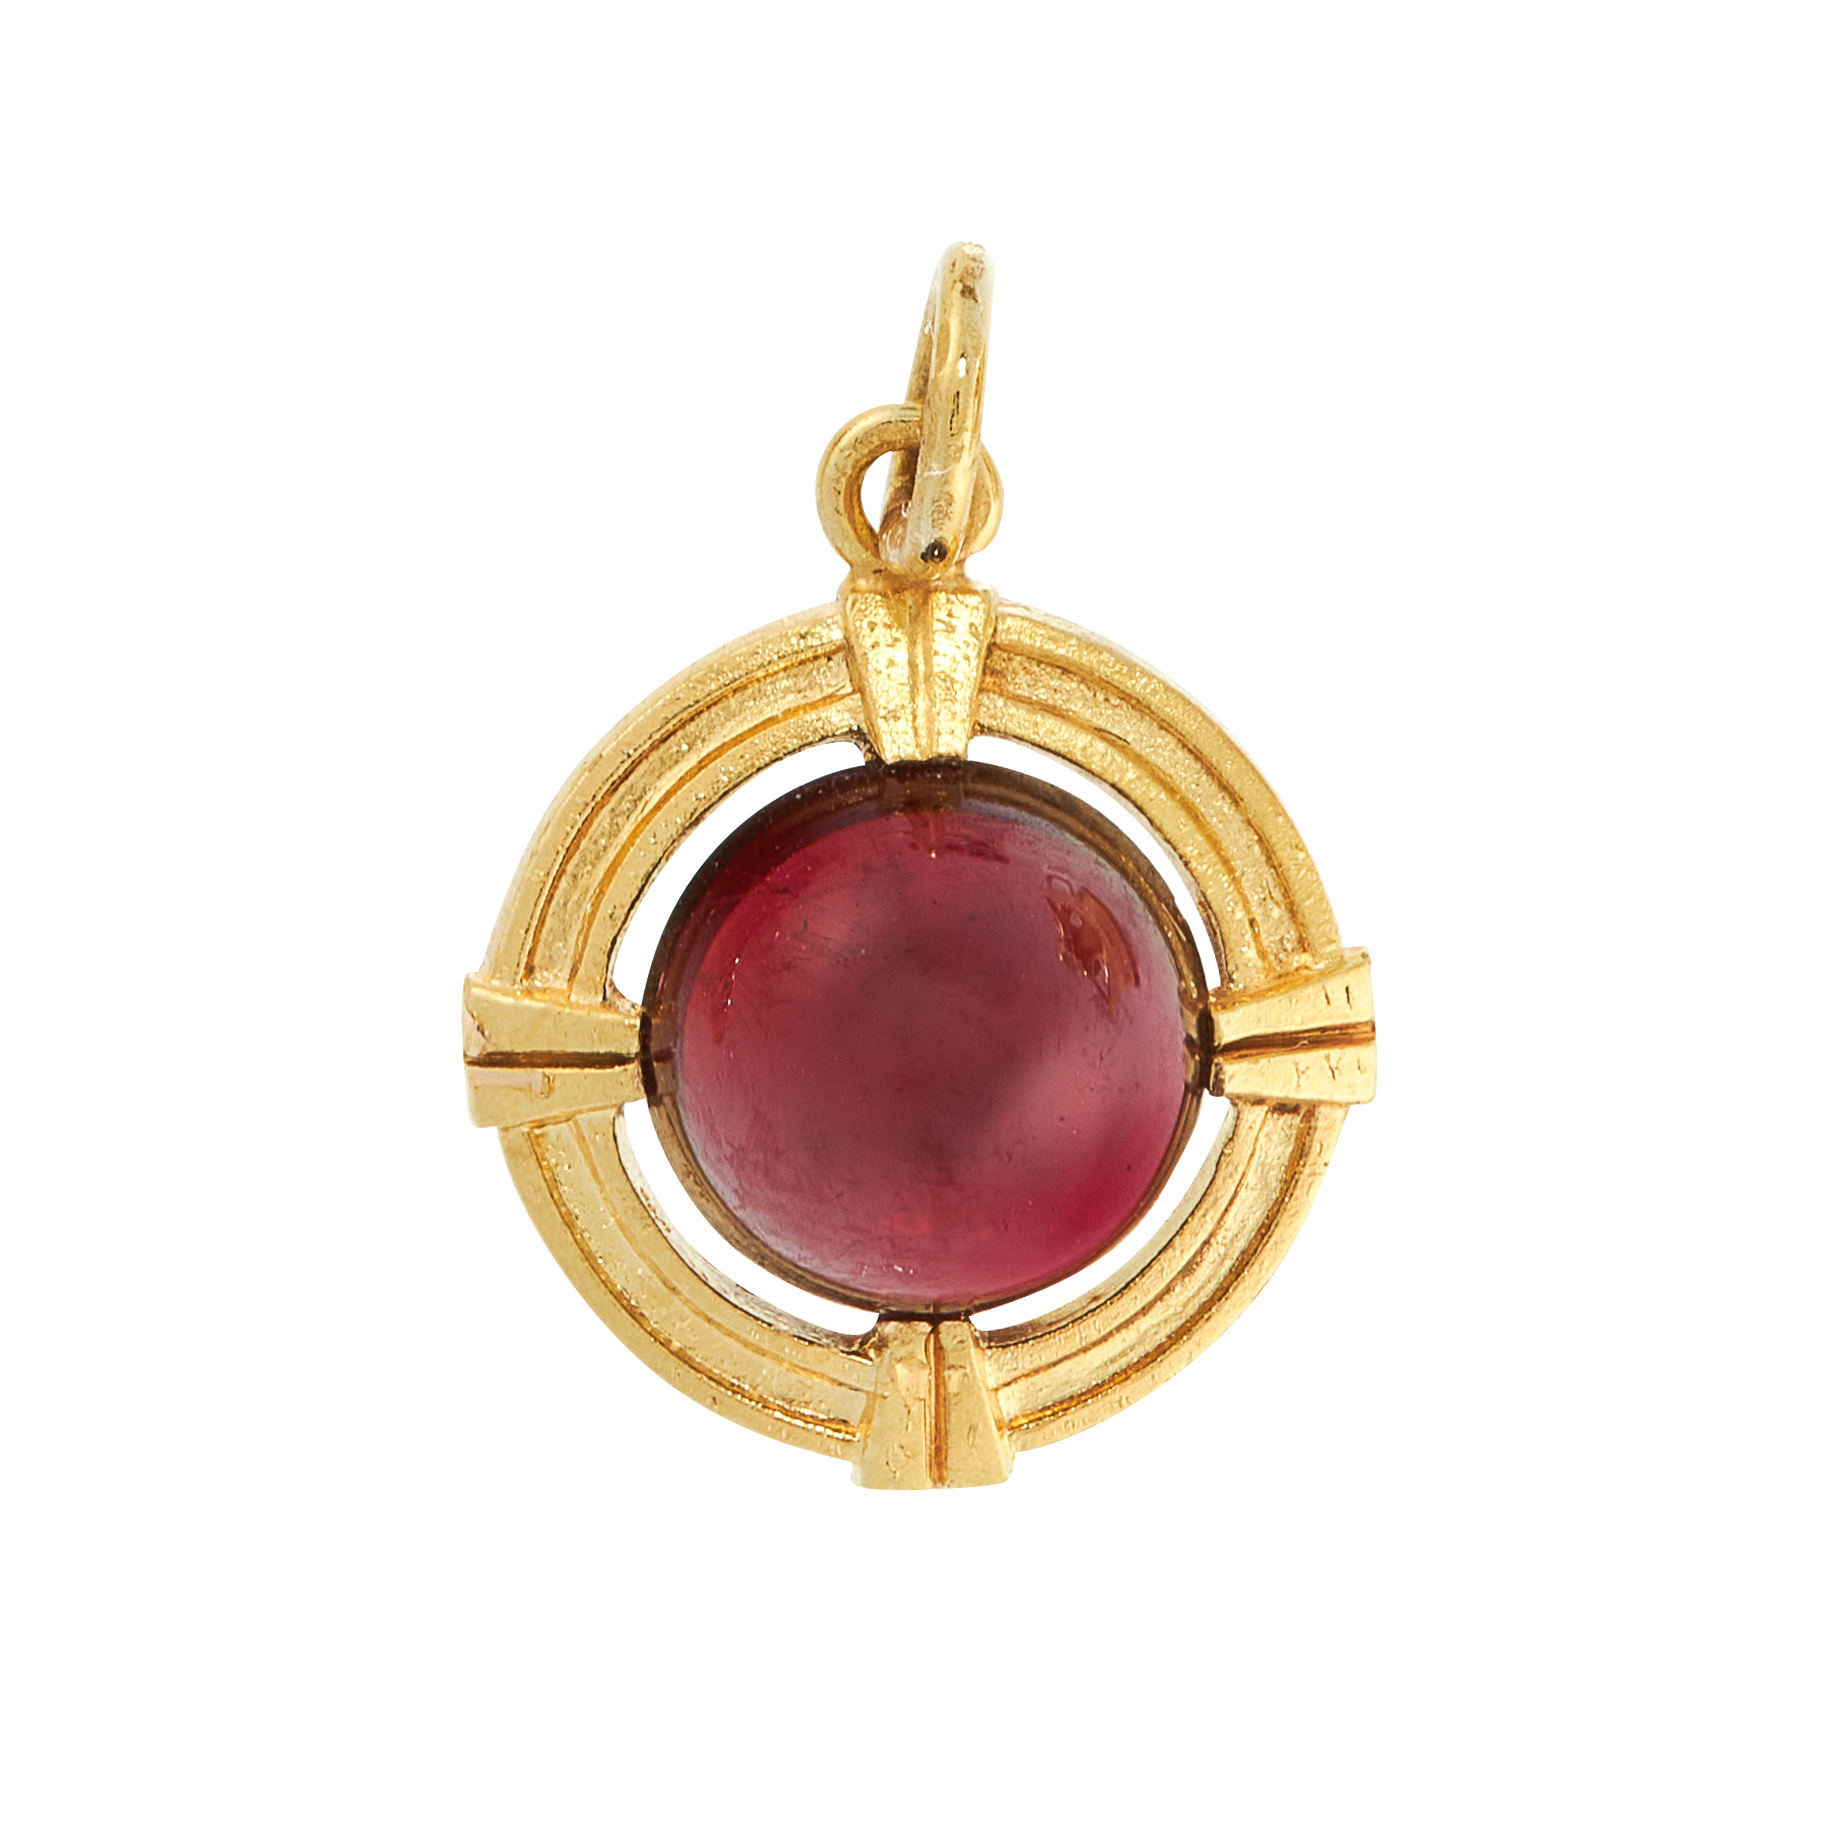 AN ANTIQUE GARNET PENDANT / CHARM in 15ct yellow gold, set with a round cabochon garnet within a